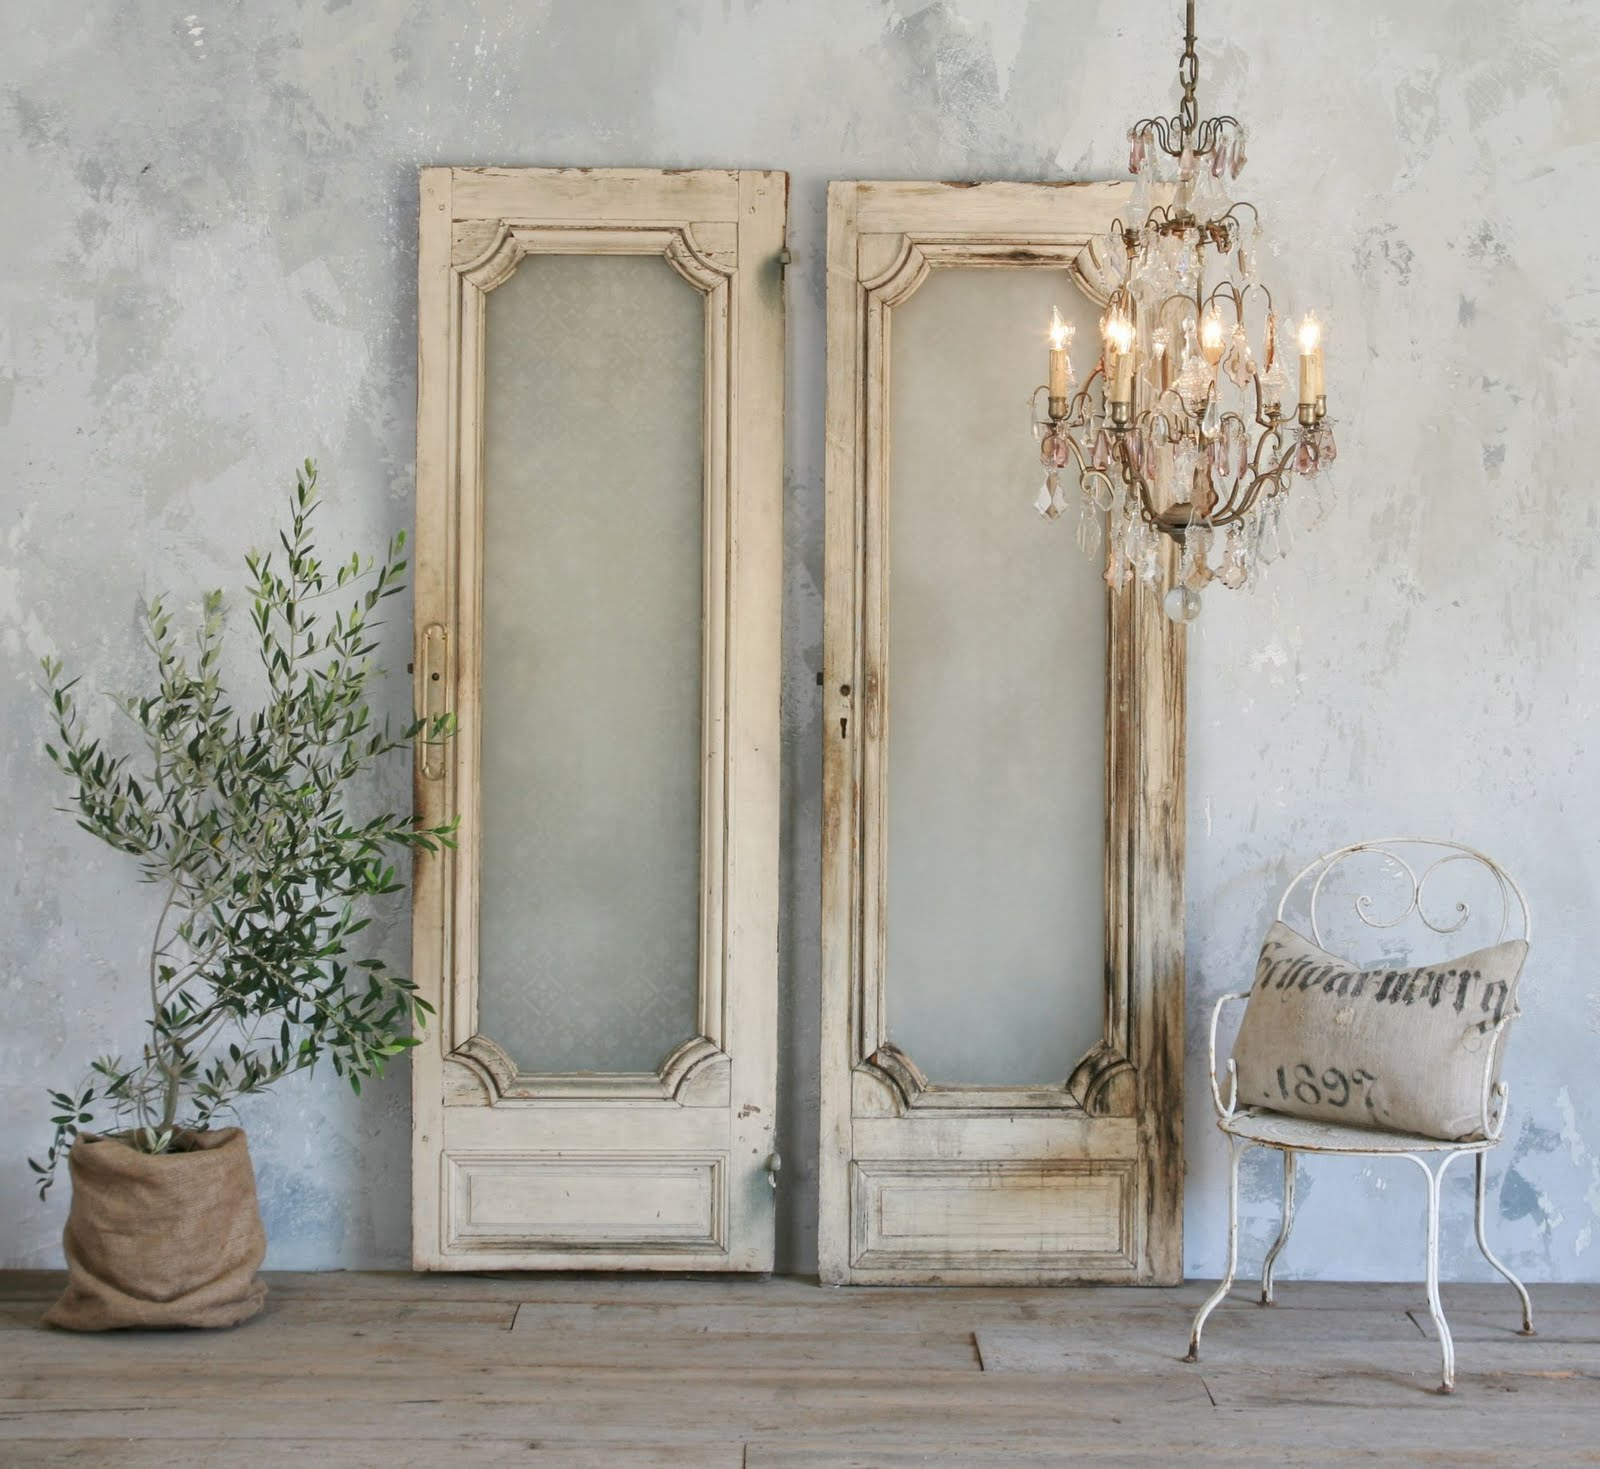 Vintage doors | home design ideas